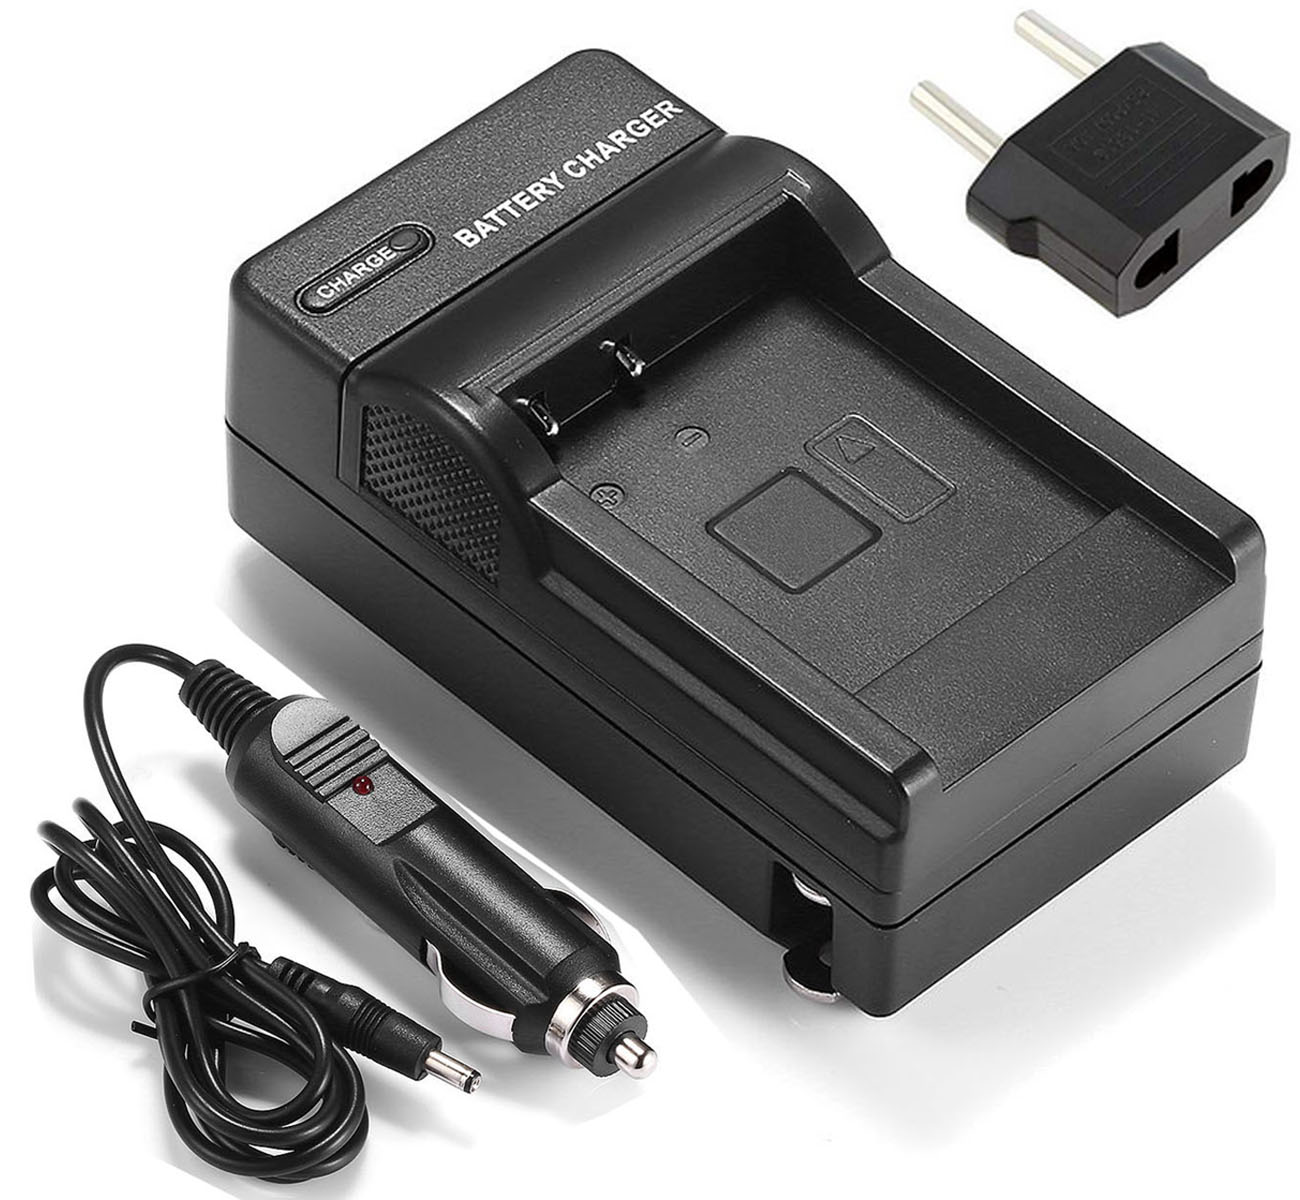 Battery <font><b>Charger</b></font> for <font><b>Canon</b></font> PowerShot A2300, A2400, <font><b>A2500</b></font>, A2600, A3400, A3500, A4000 IS, ELPH 140 IS, ELPH 150 IS Digital Camera image